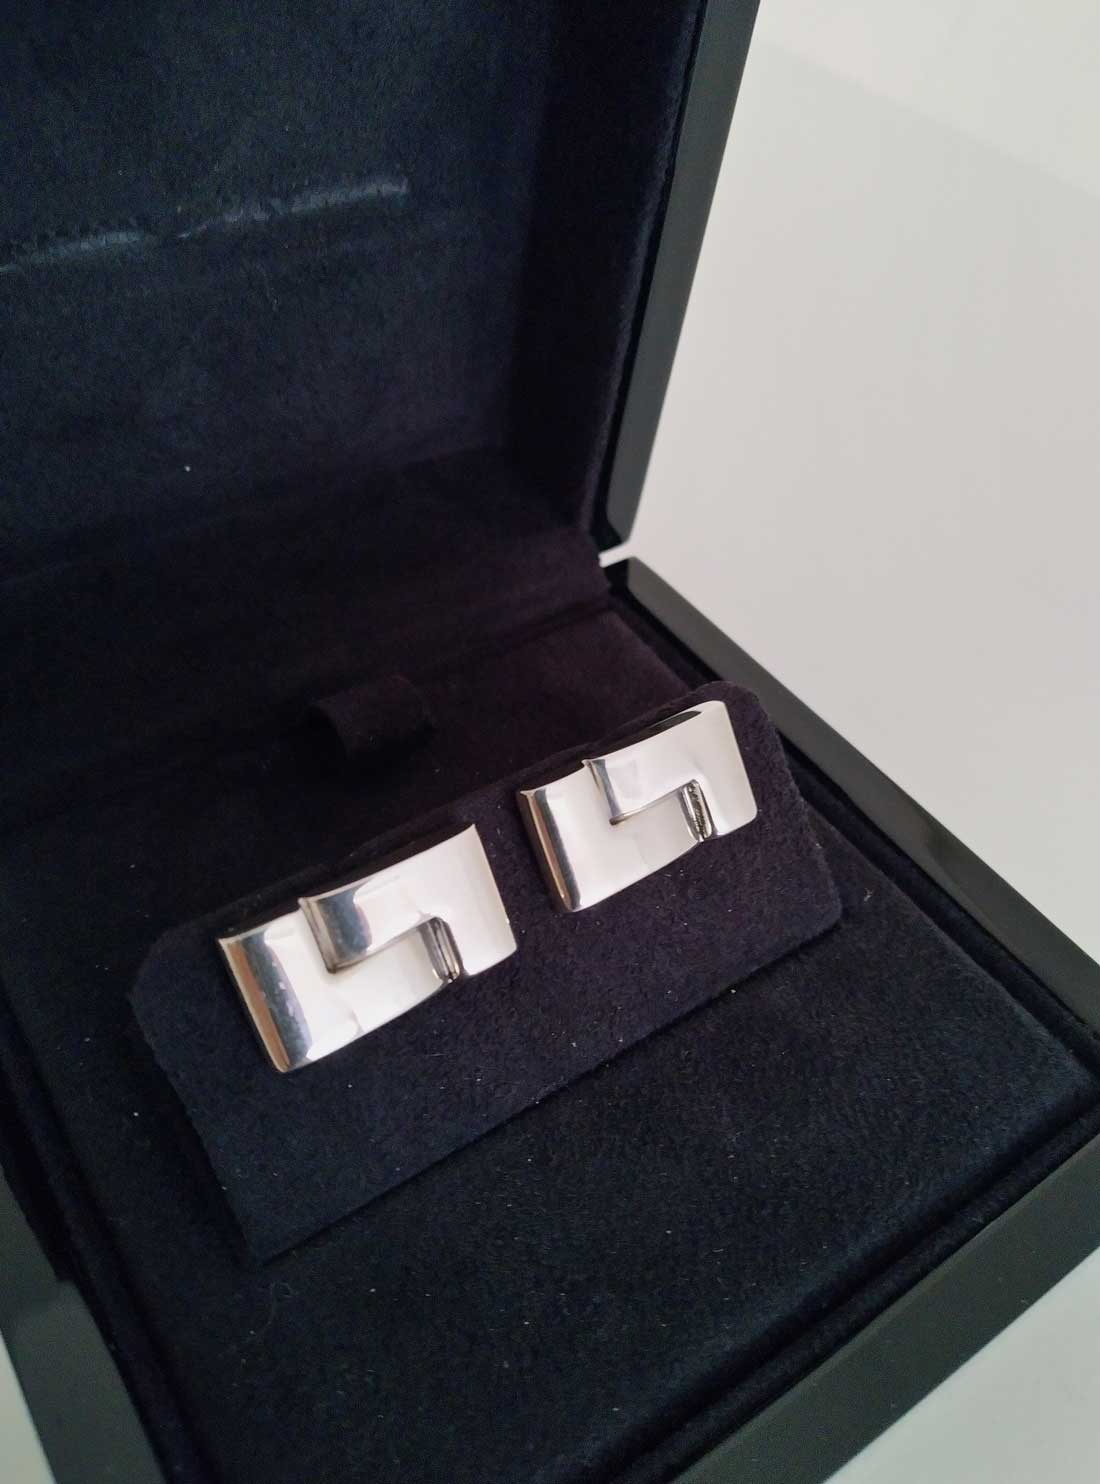 Dunhill die another day cufflinks